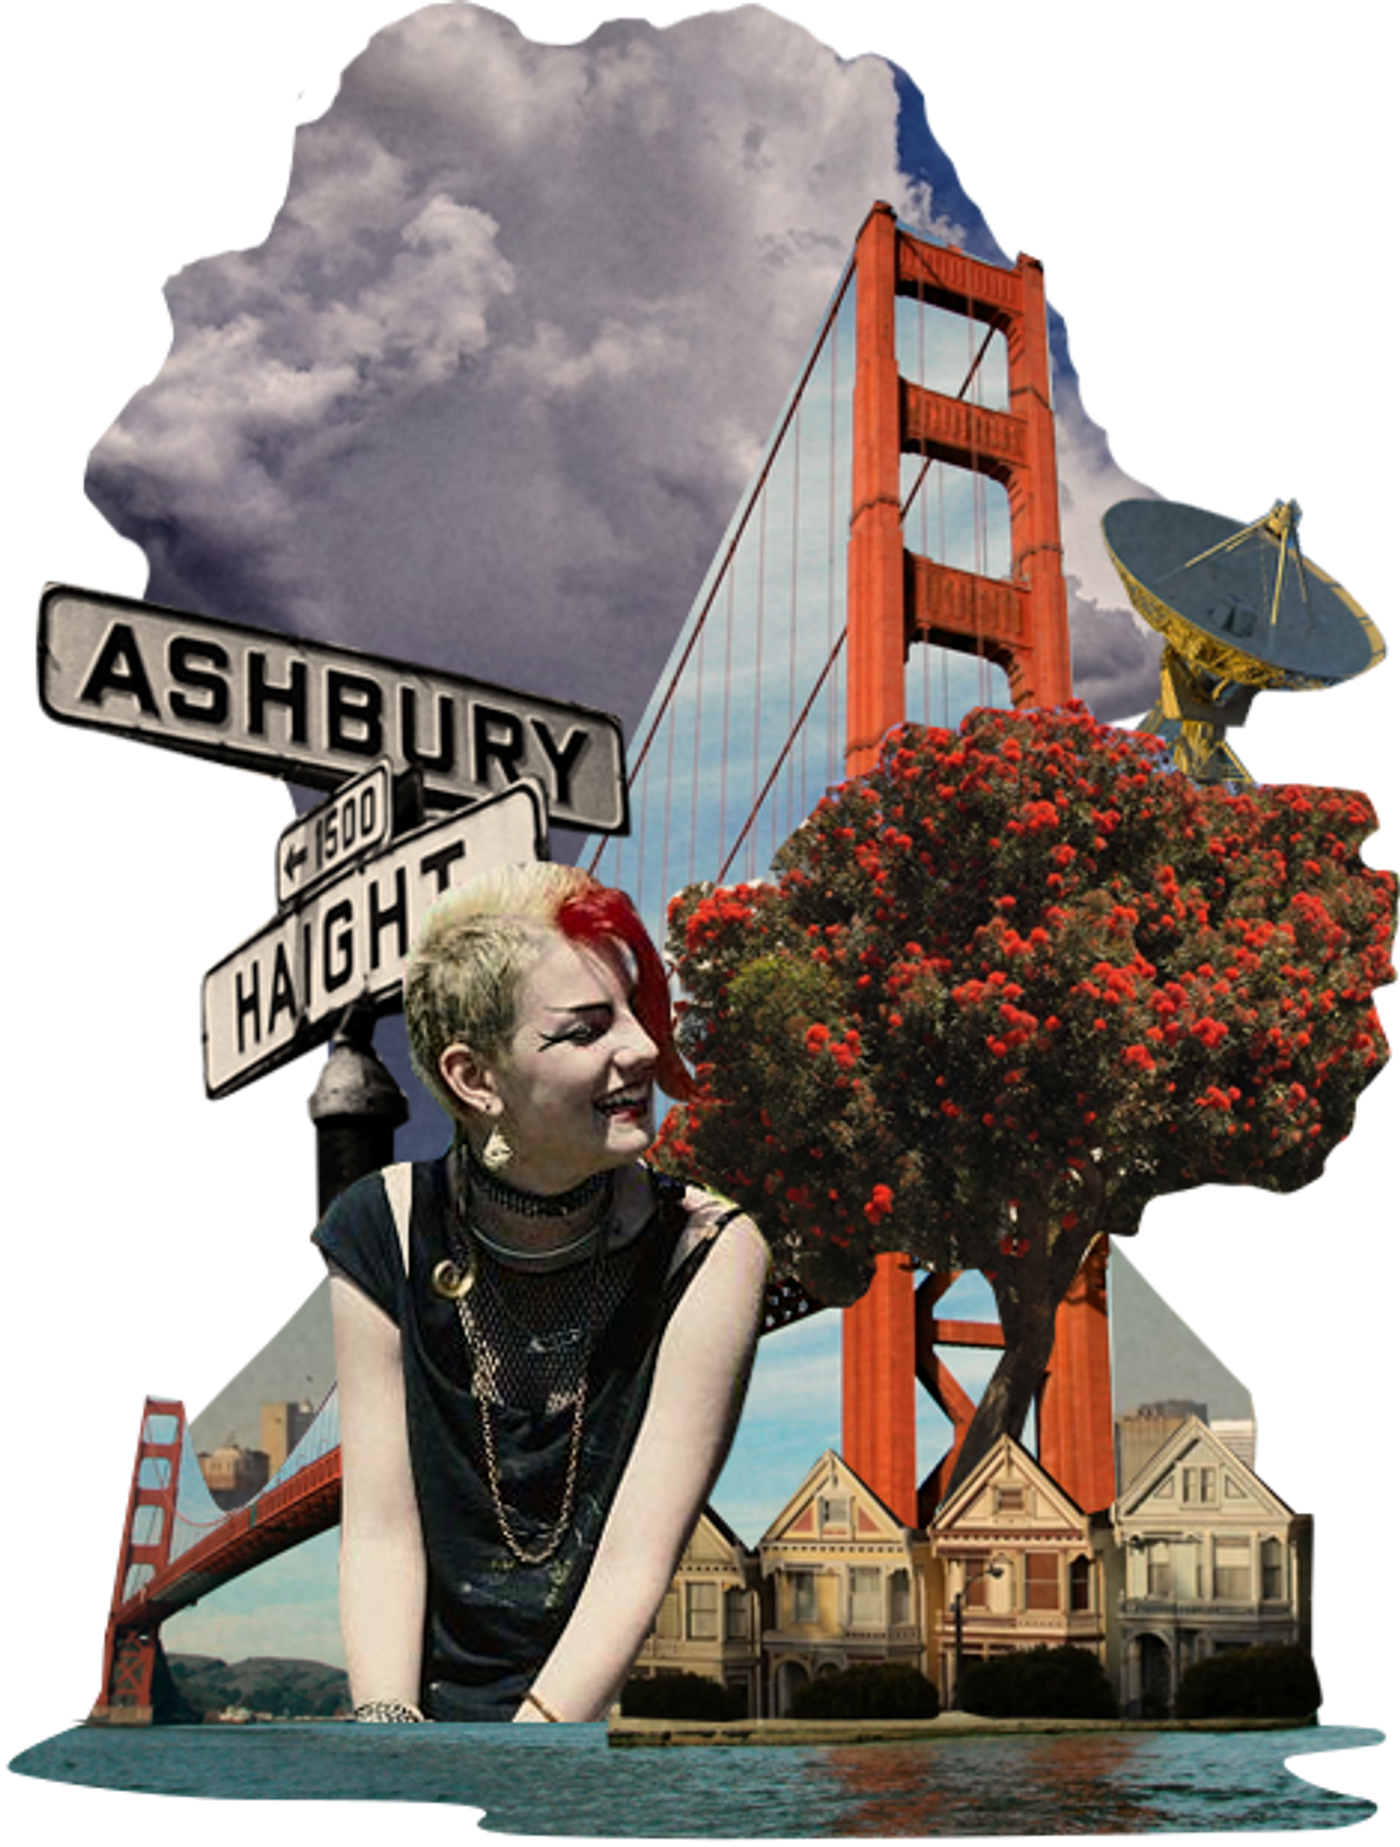 Collage of San Francisco with Golden Gate Bridge and punk rocker.